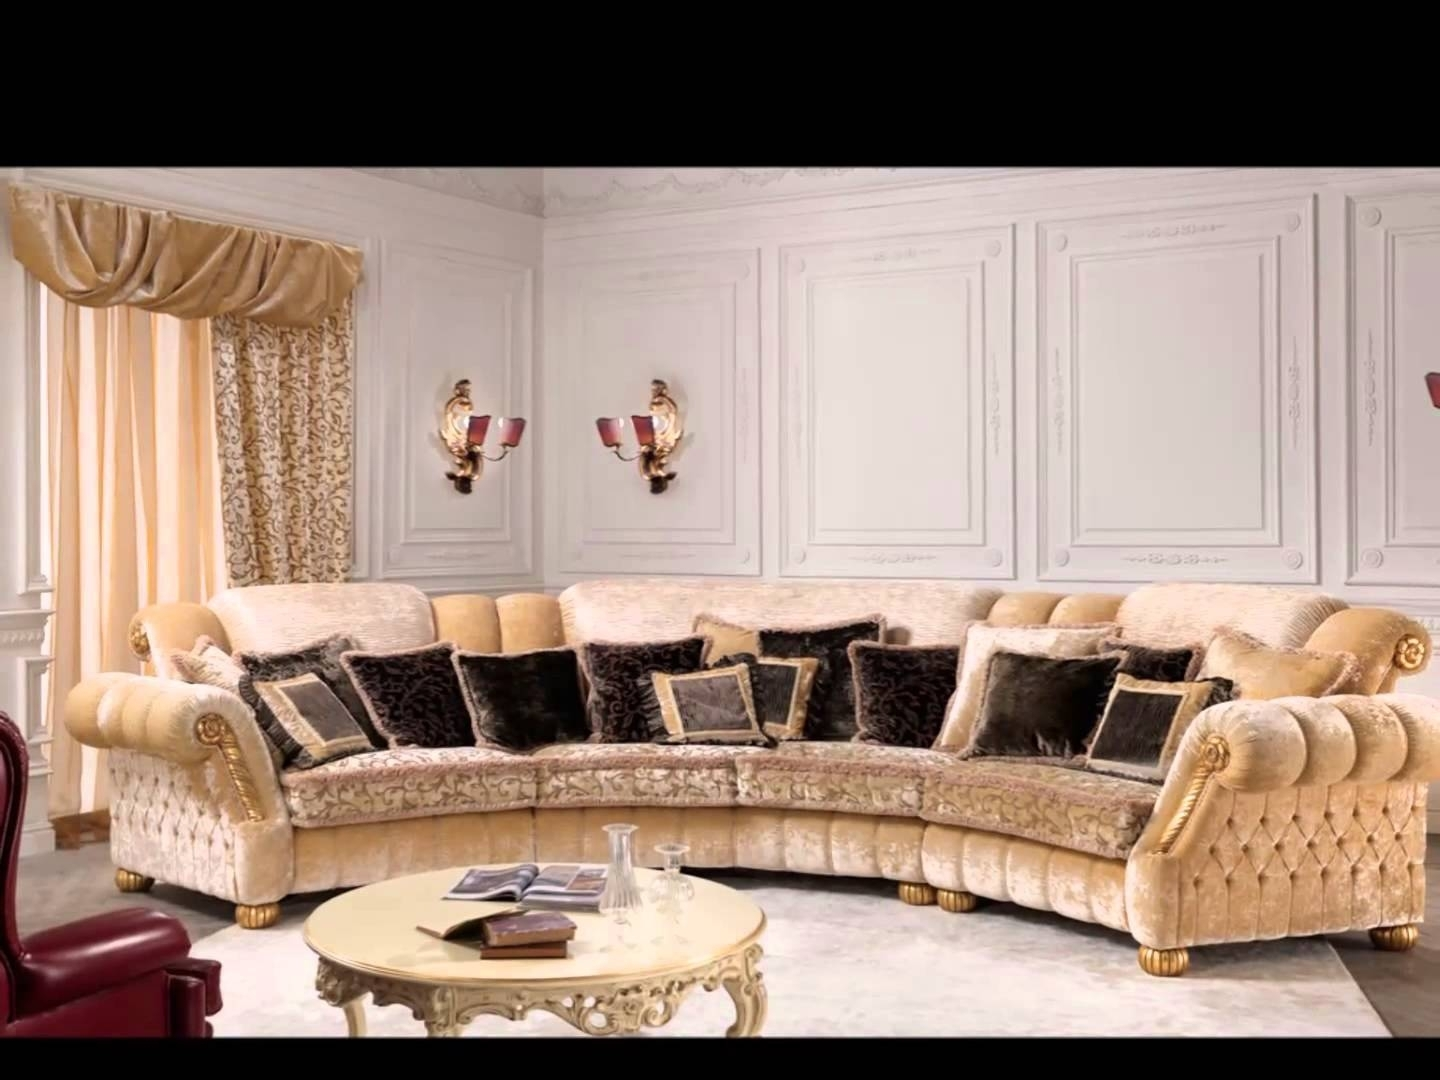 Classic Furniture Luxury Sofas Ravasi Salotti Youtube Classic Sofa pertaining to Luxury Sofas (Image 2 of 10)